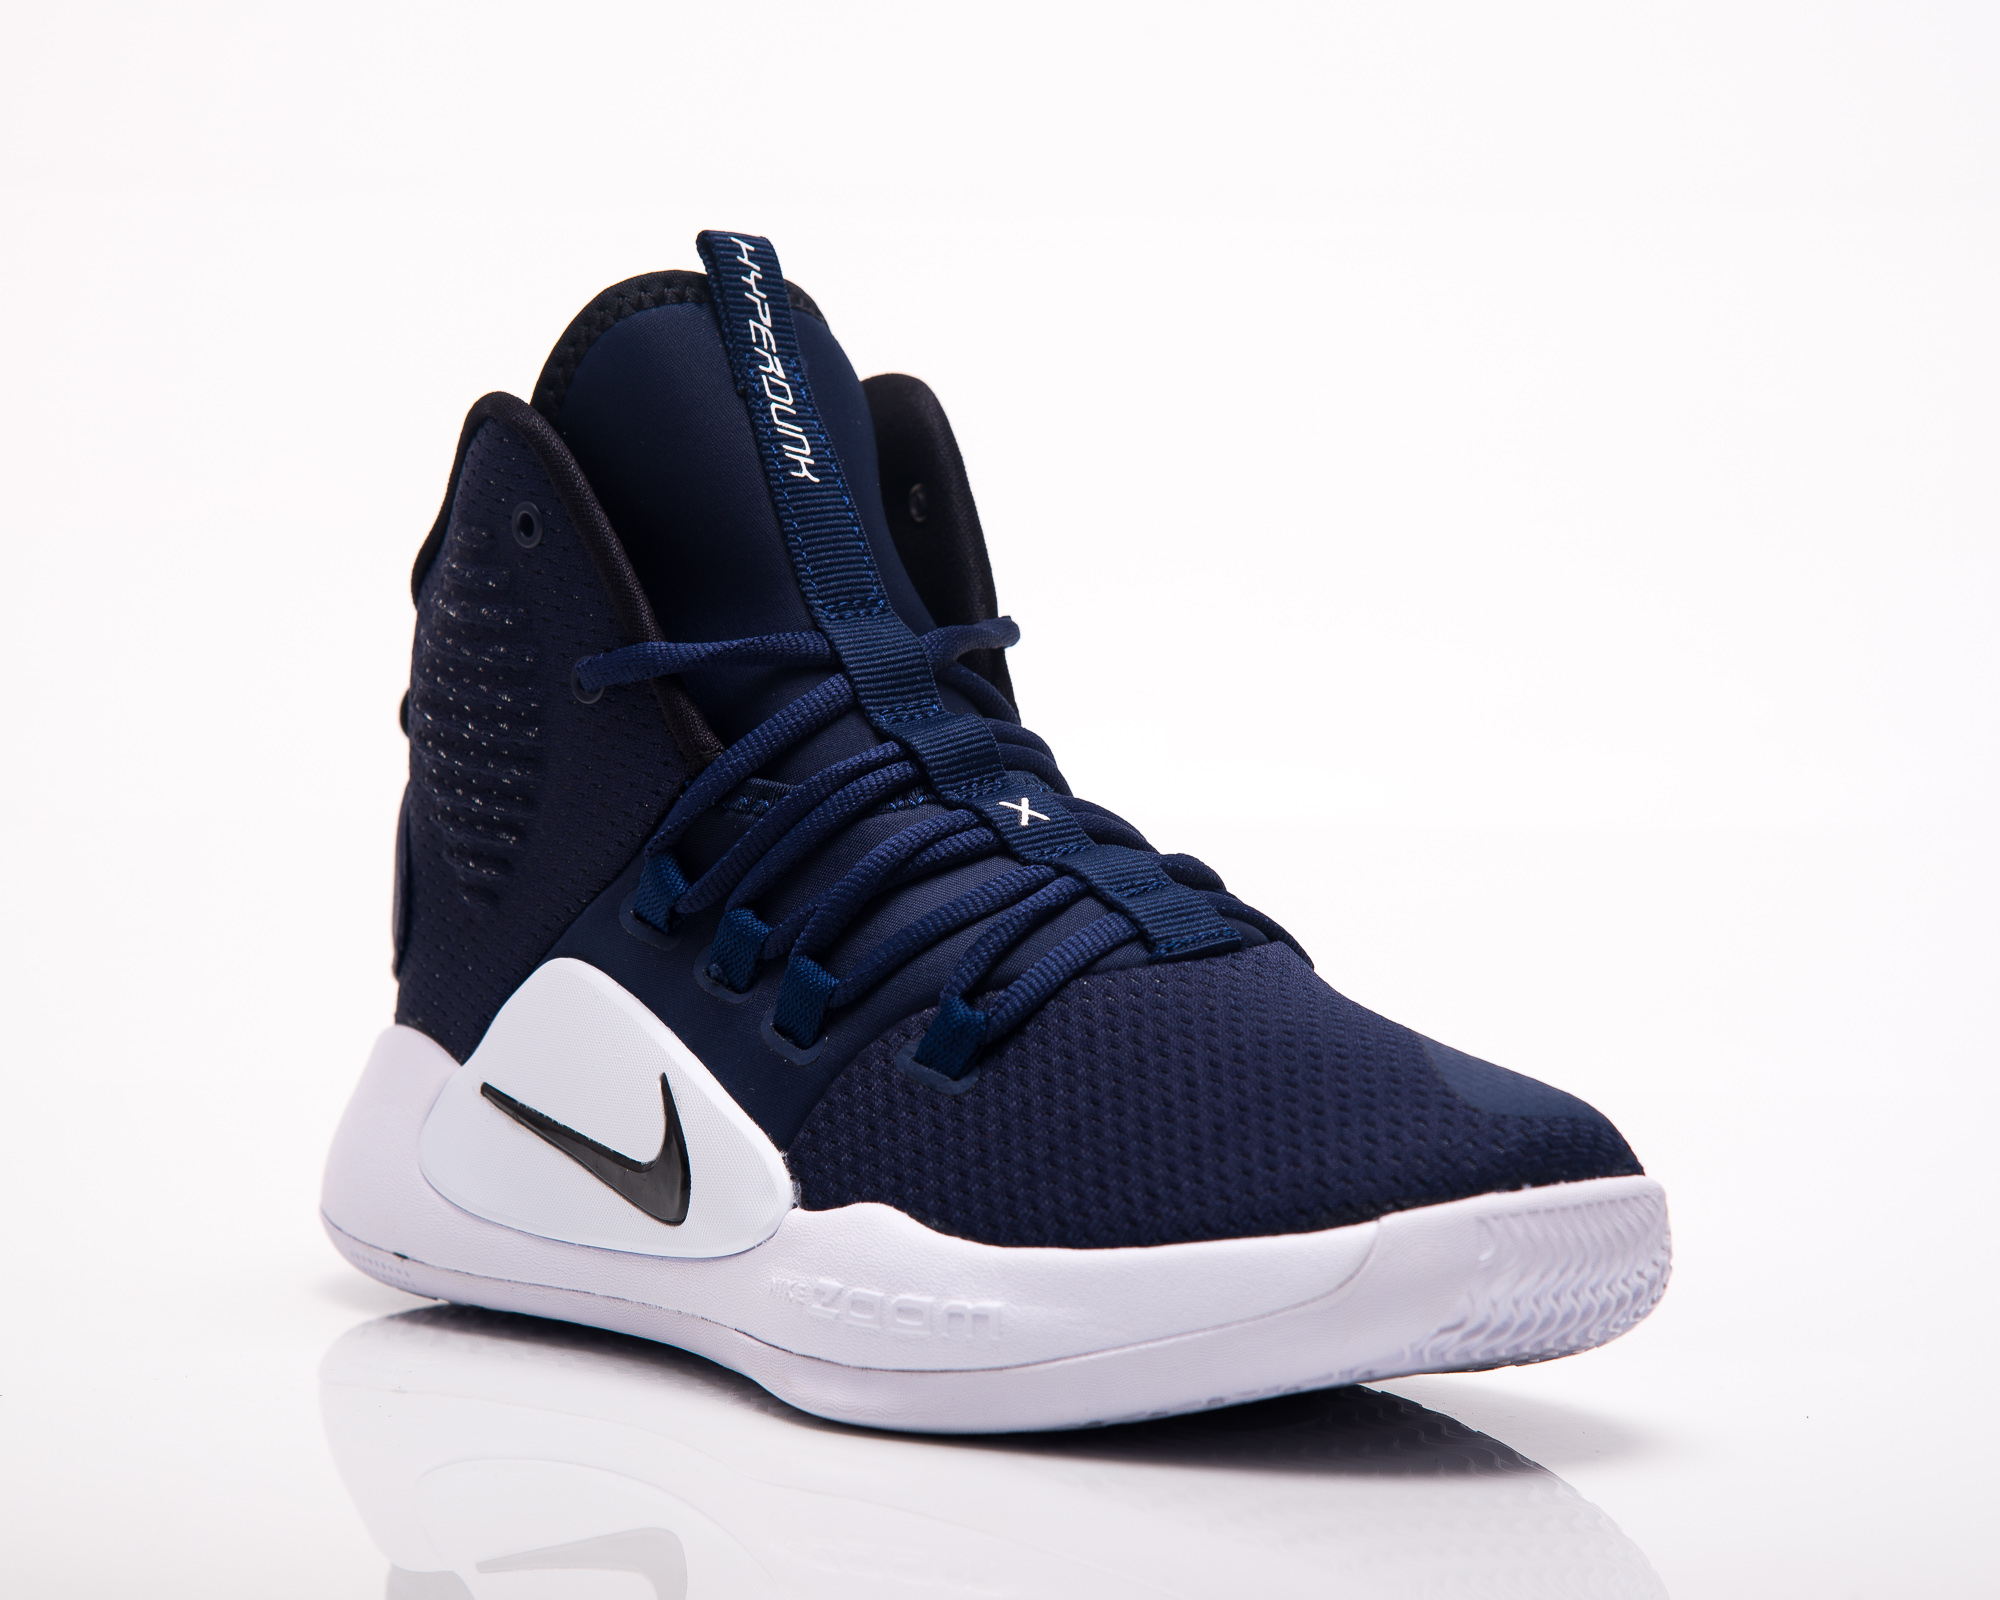 Nike Hyperdunk X TB Basketball Shoes - BASKETBALL SHOES ...